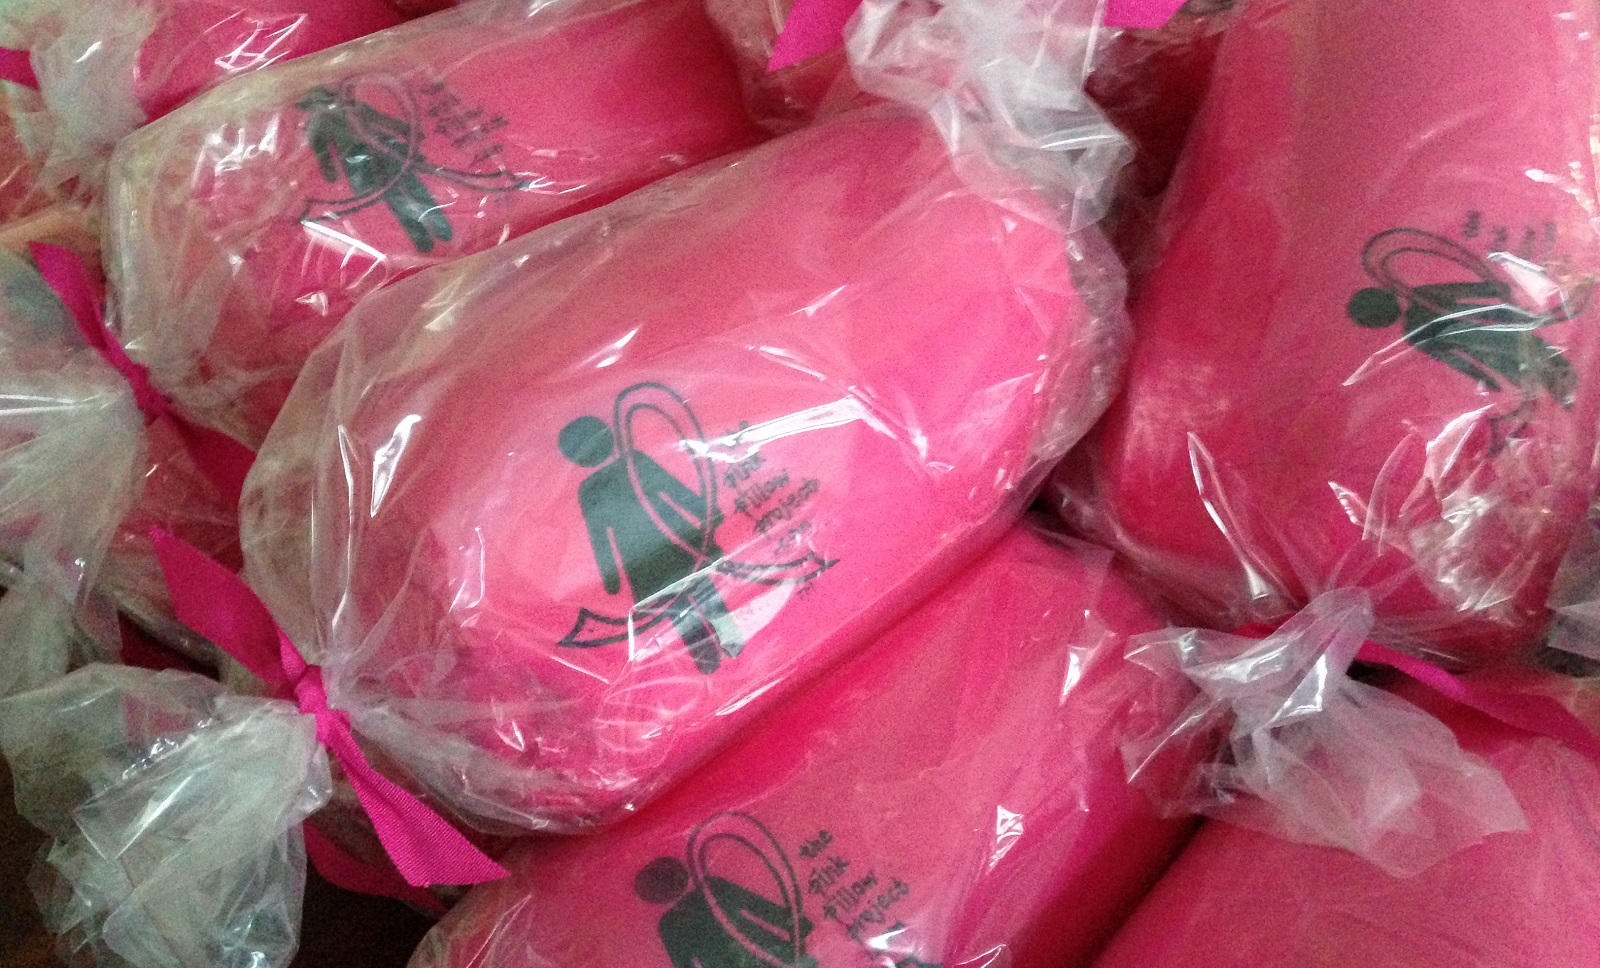 The Pink Pillow Project provides pillows to help women with breast cancer.